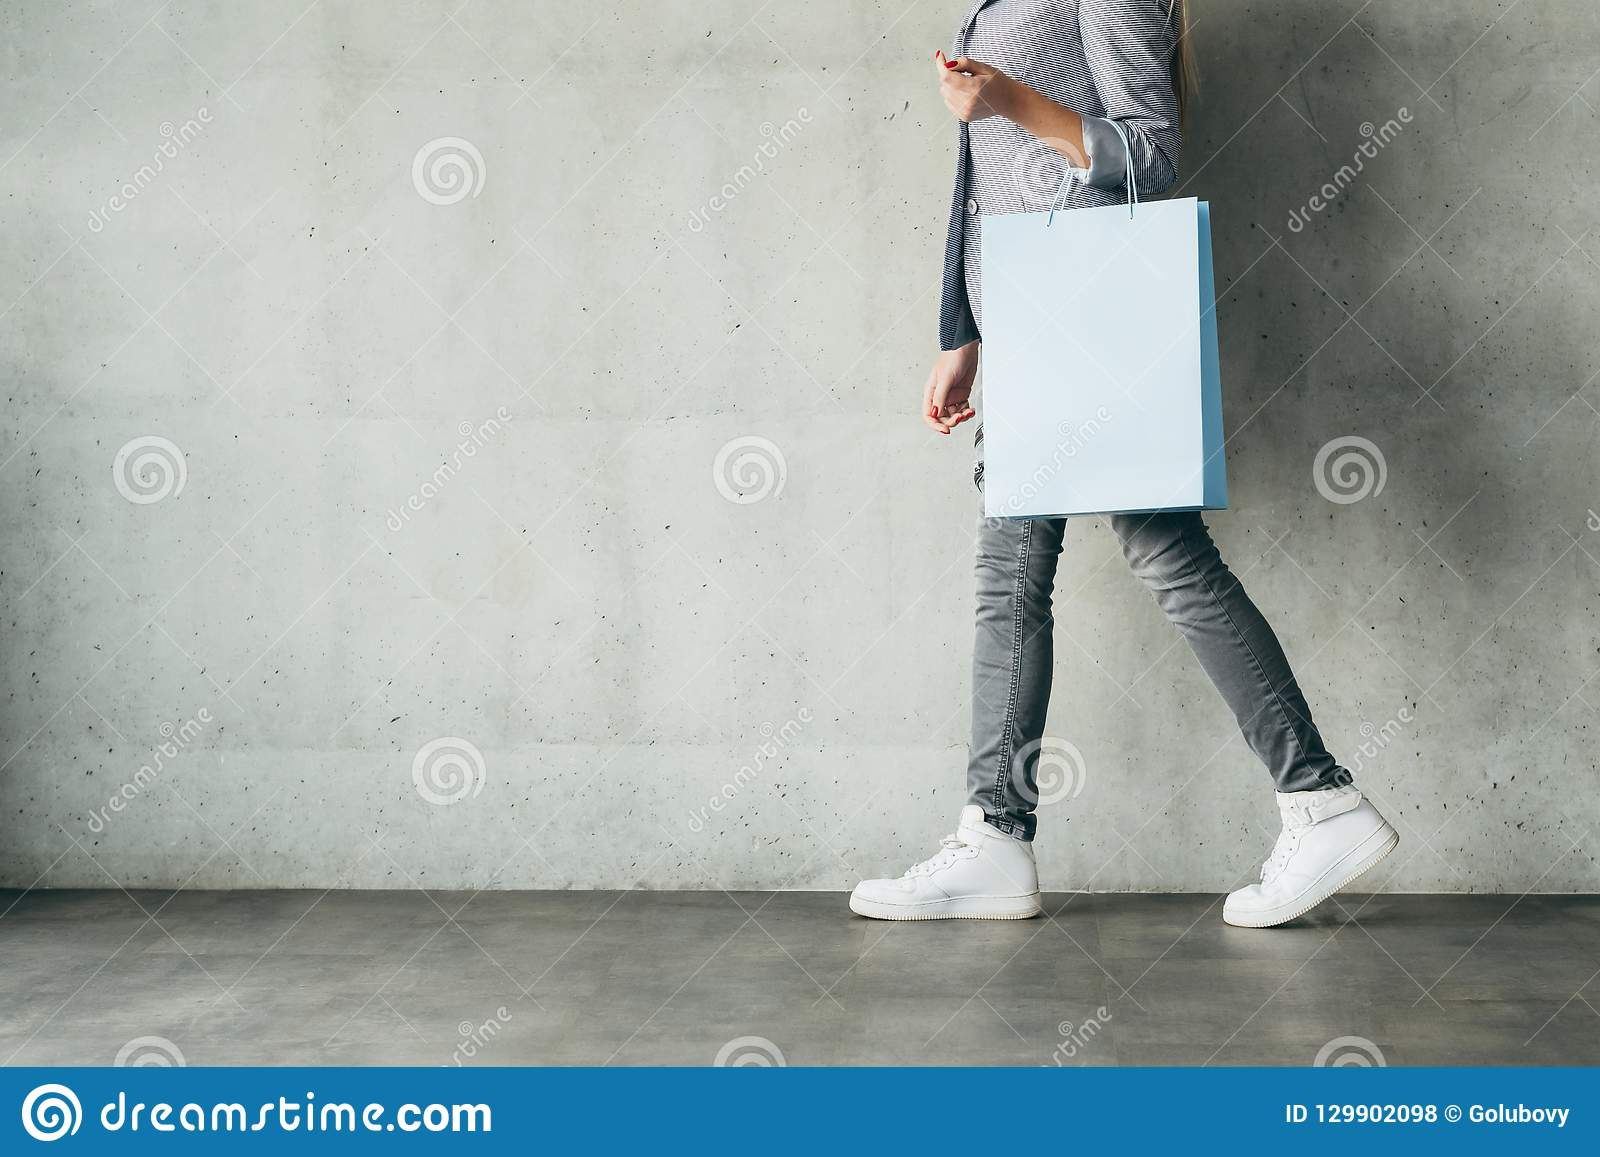 Discounts shopping spending woman holding bag